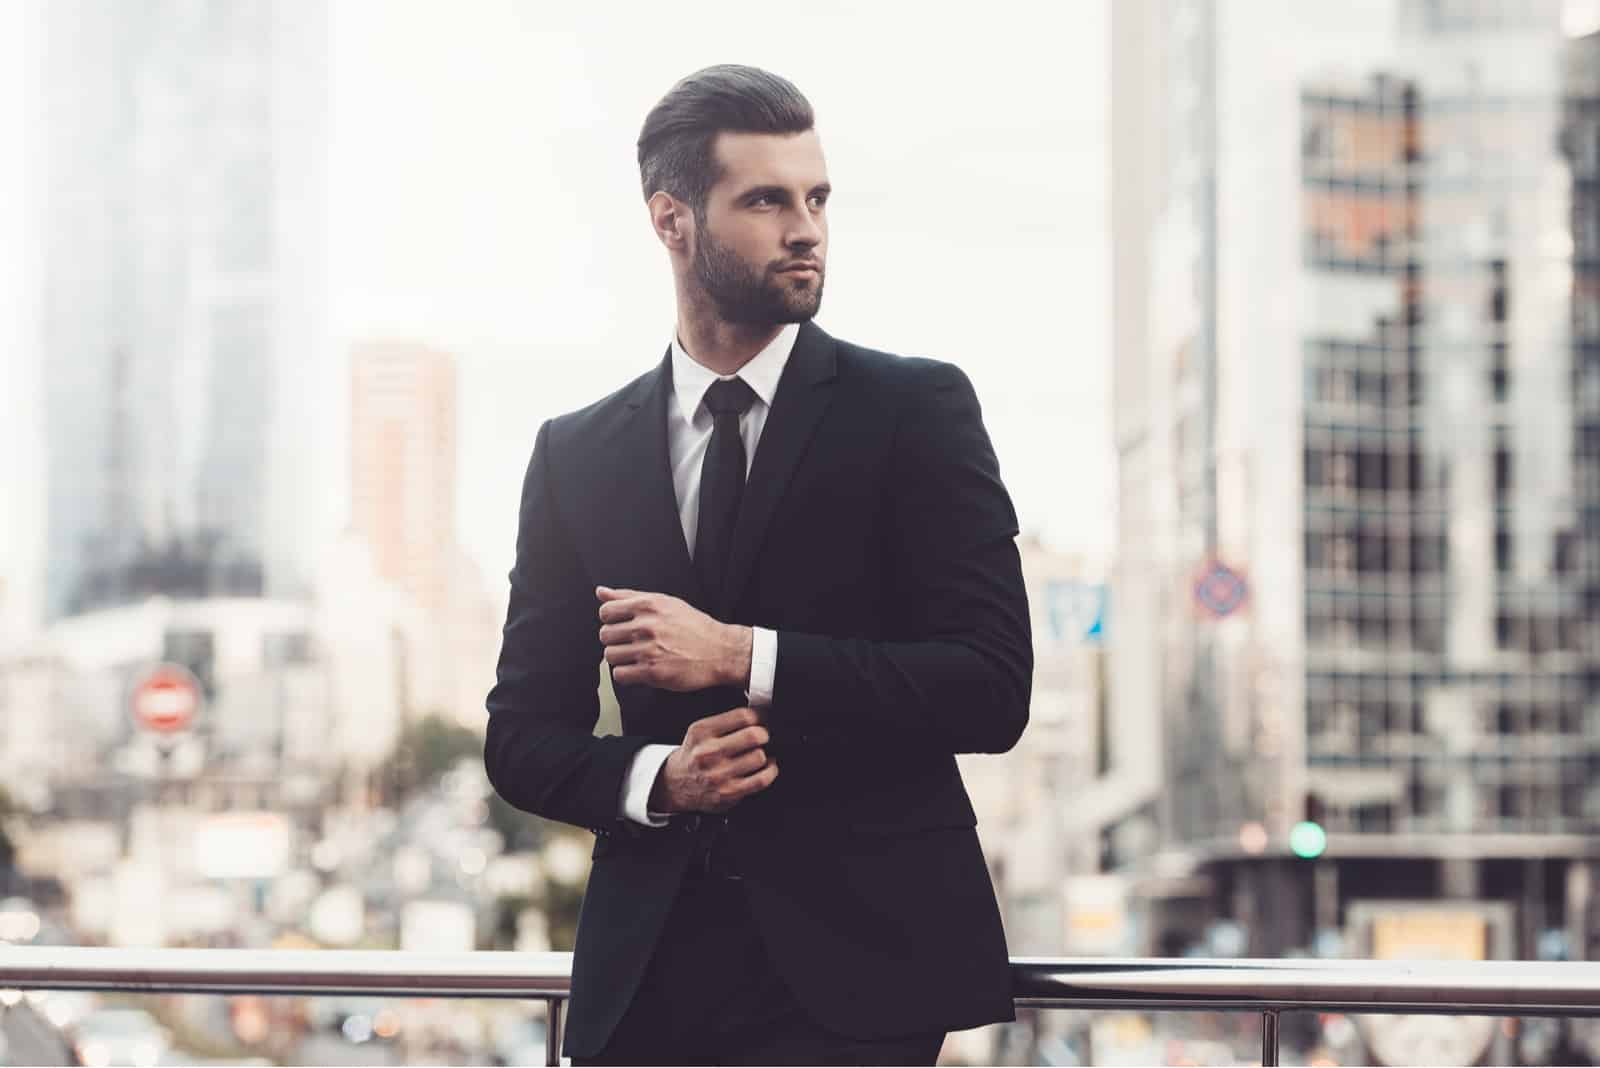 Confident young man in full suit adjusting his sleeve